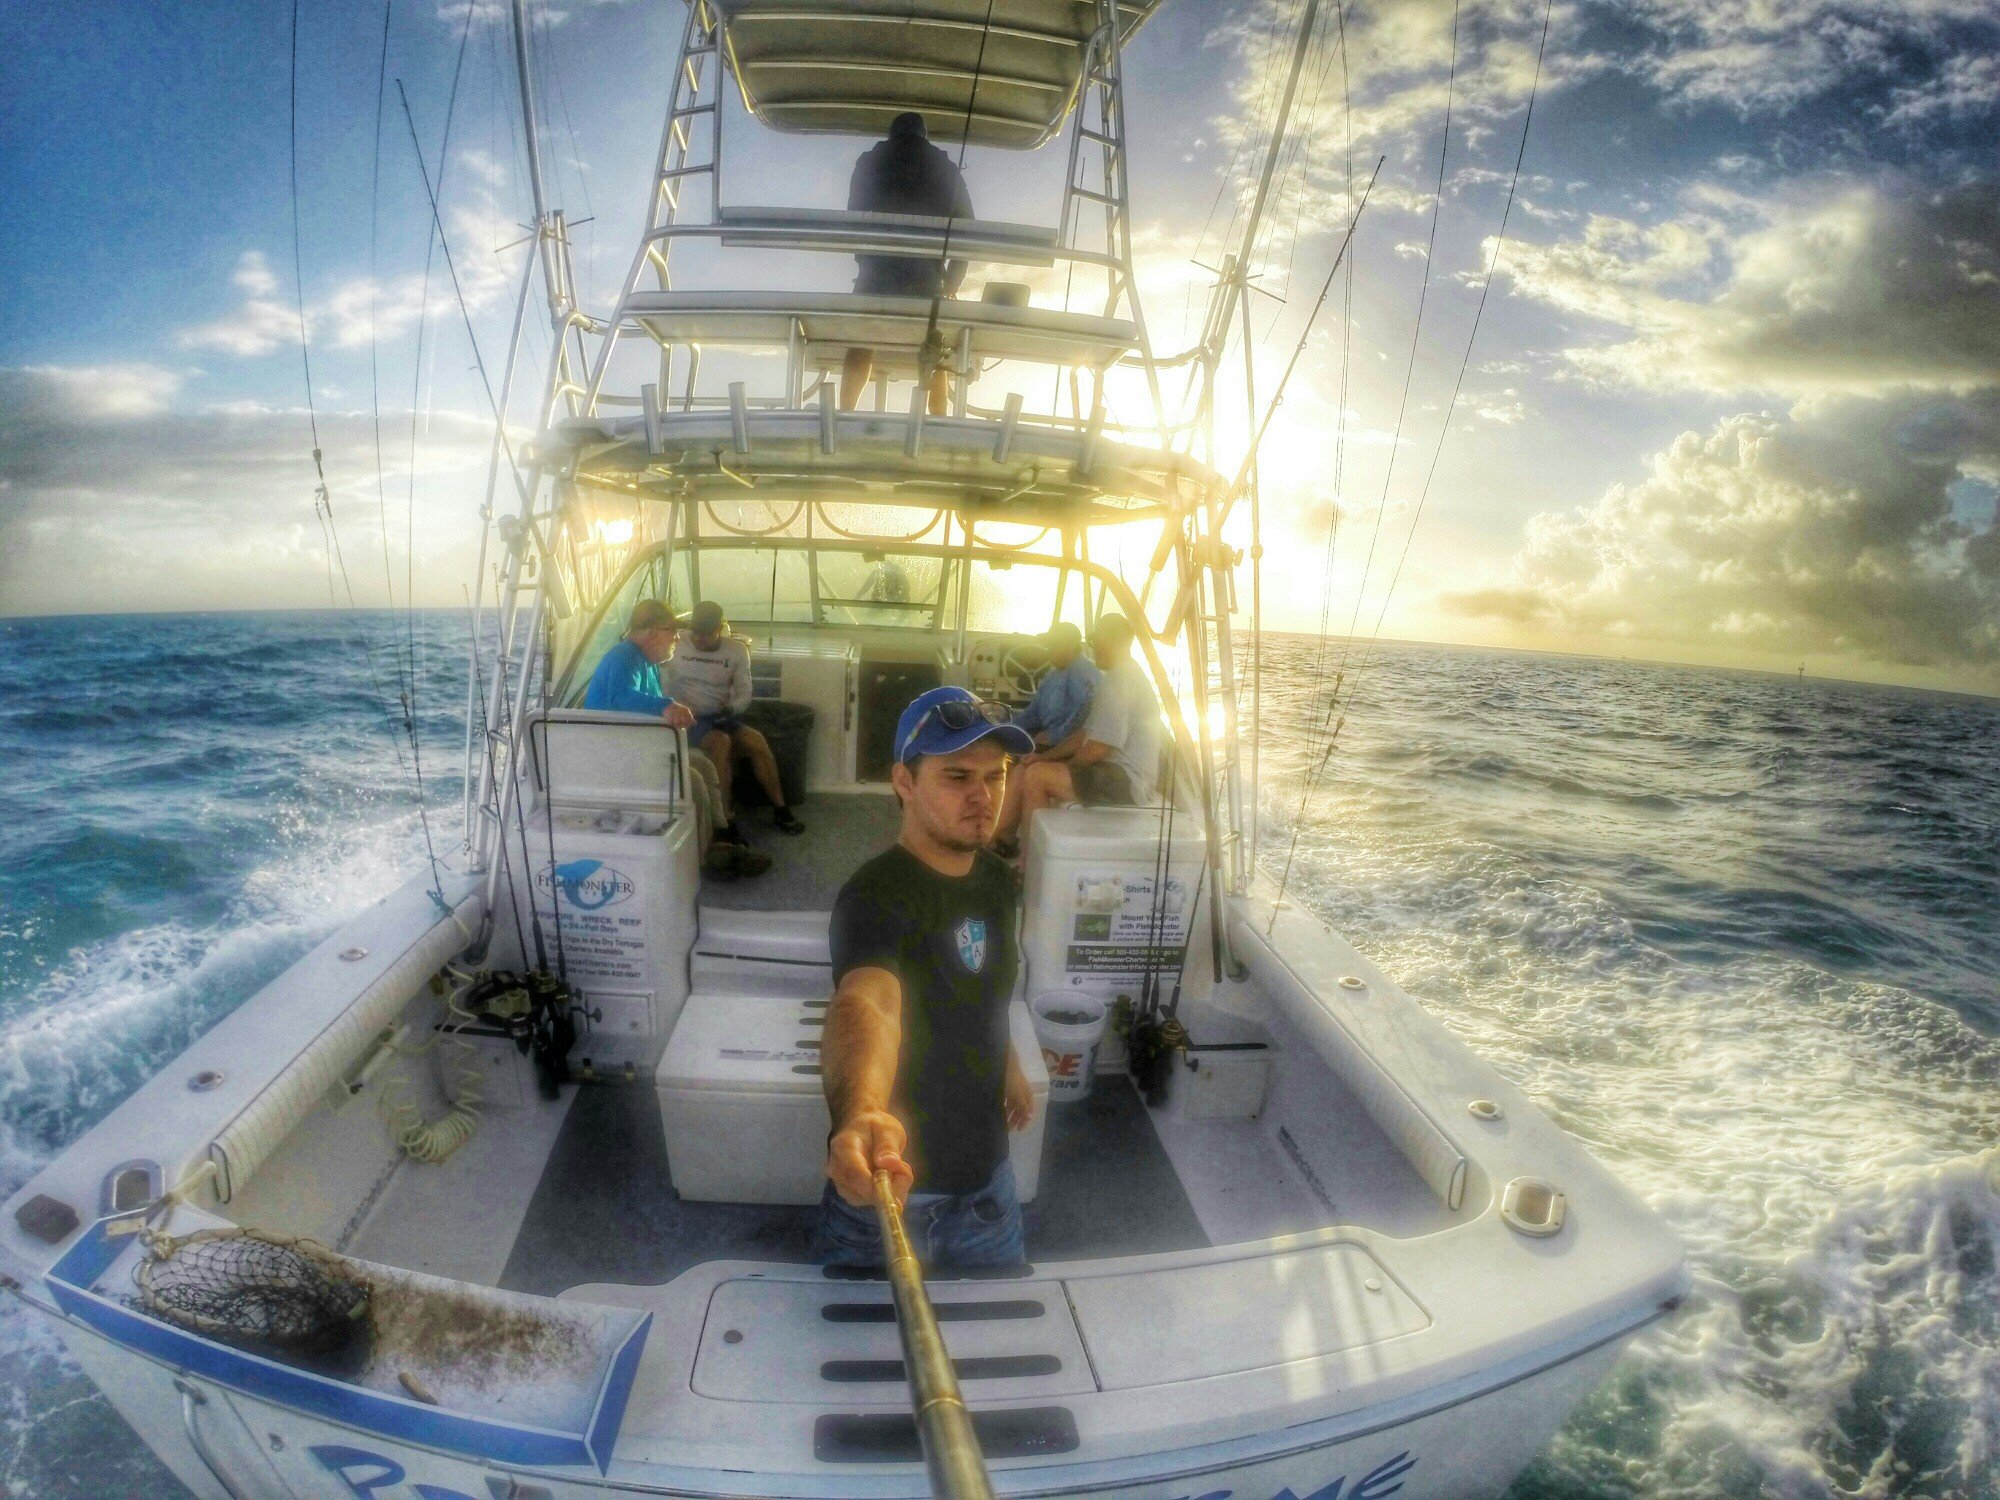 PREMIUM TIME SPORTFISHING AT A&B MARINA KEY WEST - Image 1